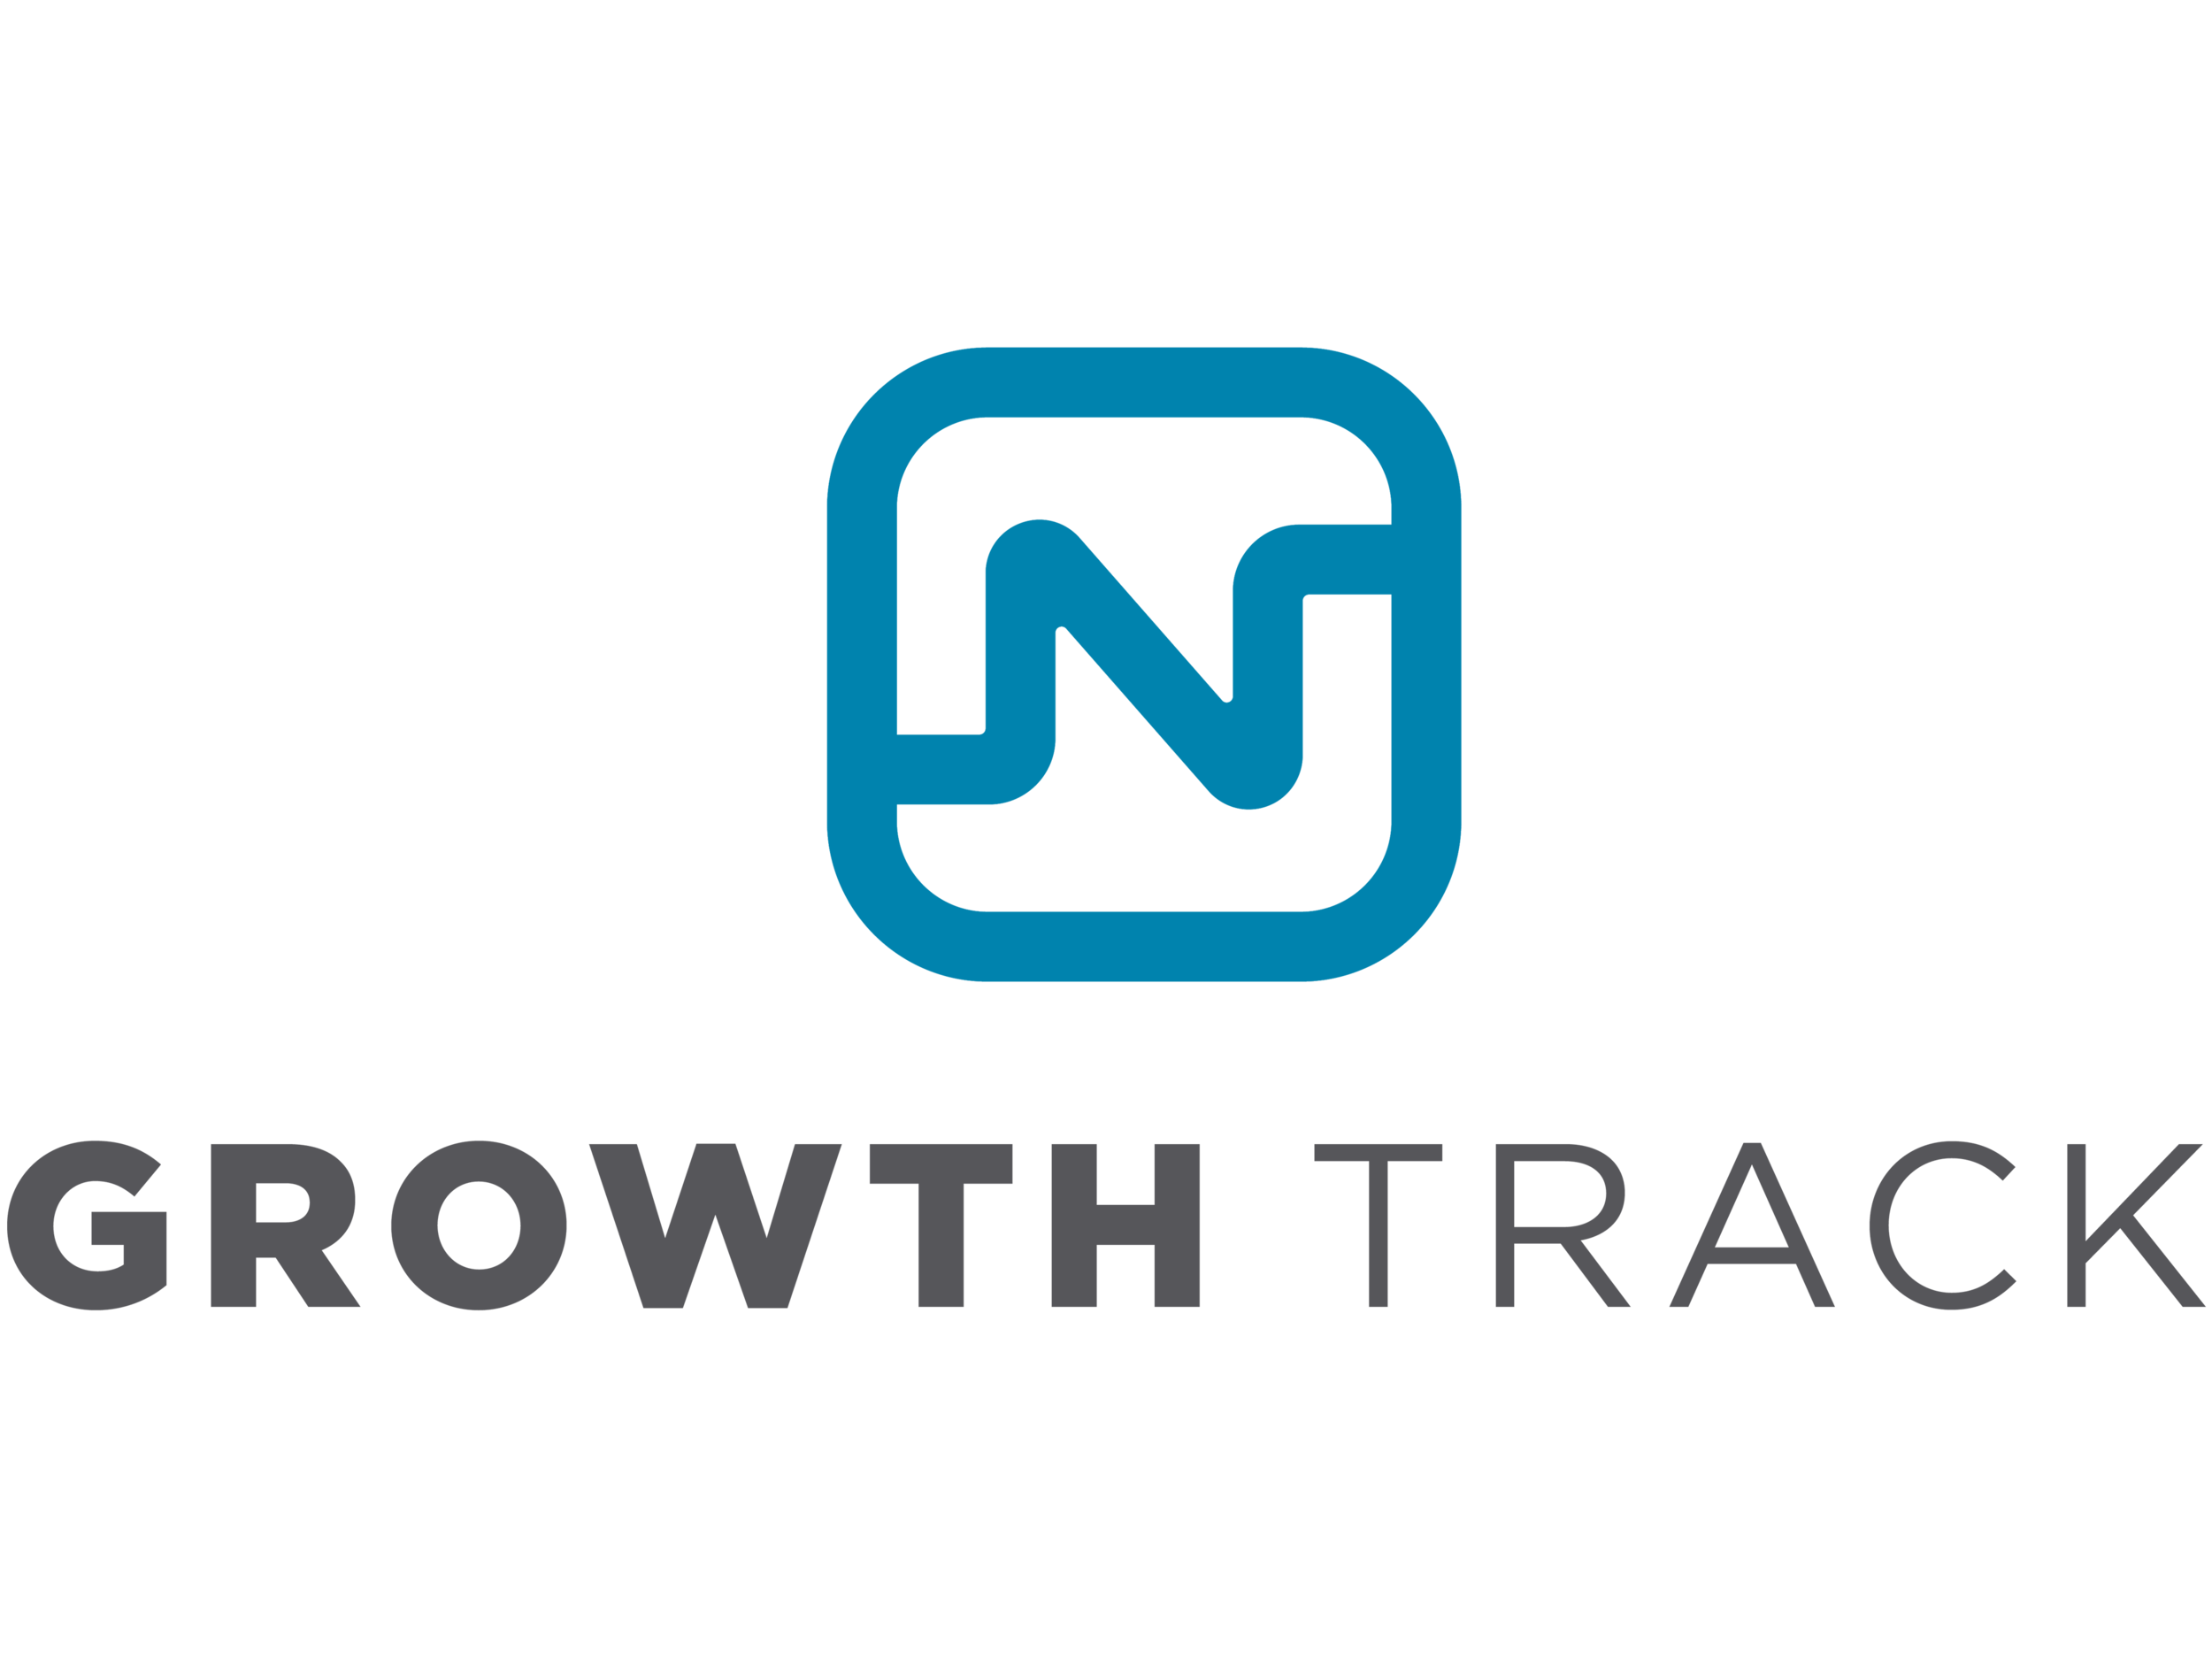 Growth Track_grey_web.png